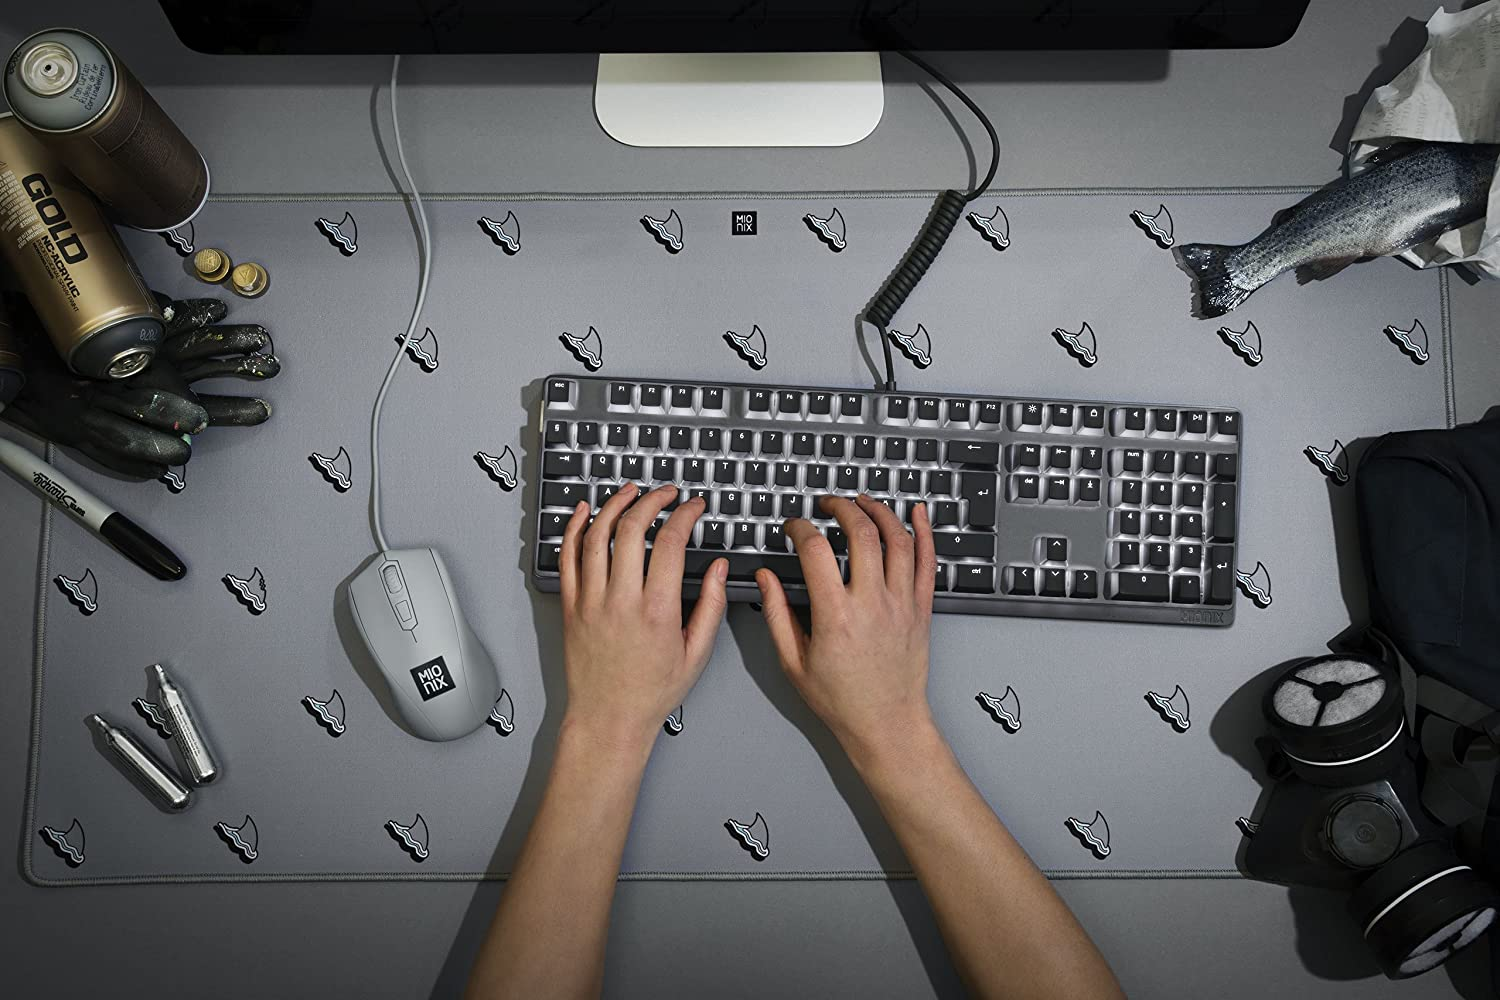 """Thick Desk Mat for Computers Office Protective Desktop Protector Pads 35.5/"""" x 17/"""" Writing Blue Large Extended Gaming Computer Mouse Pad Laptops Colorful Blotter Mats for Home"""